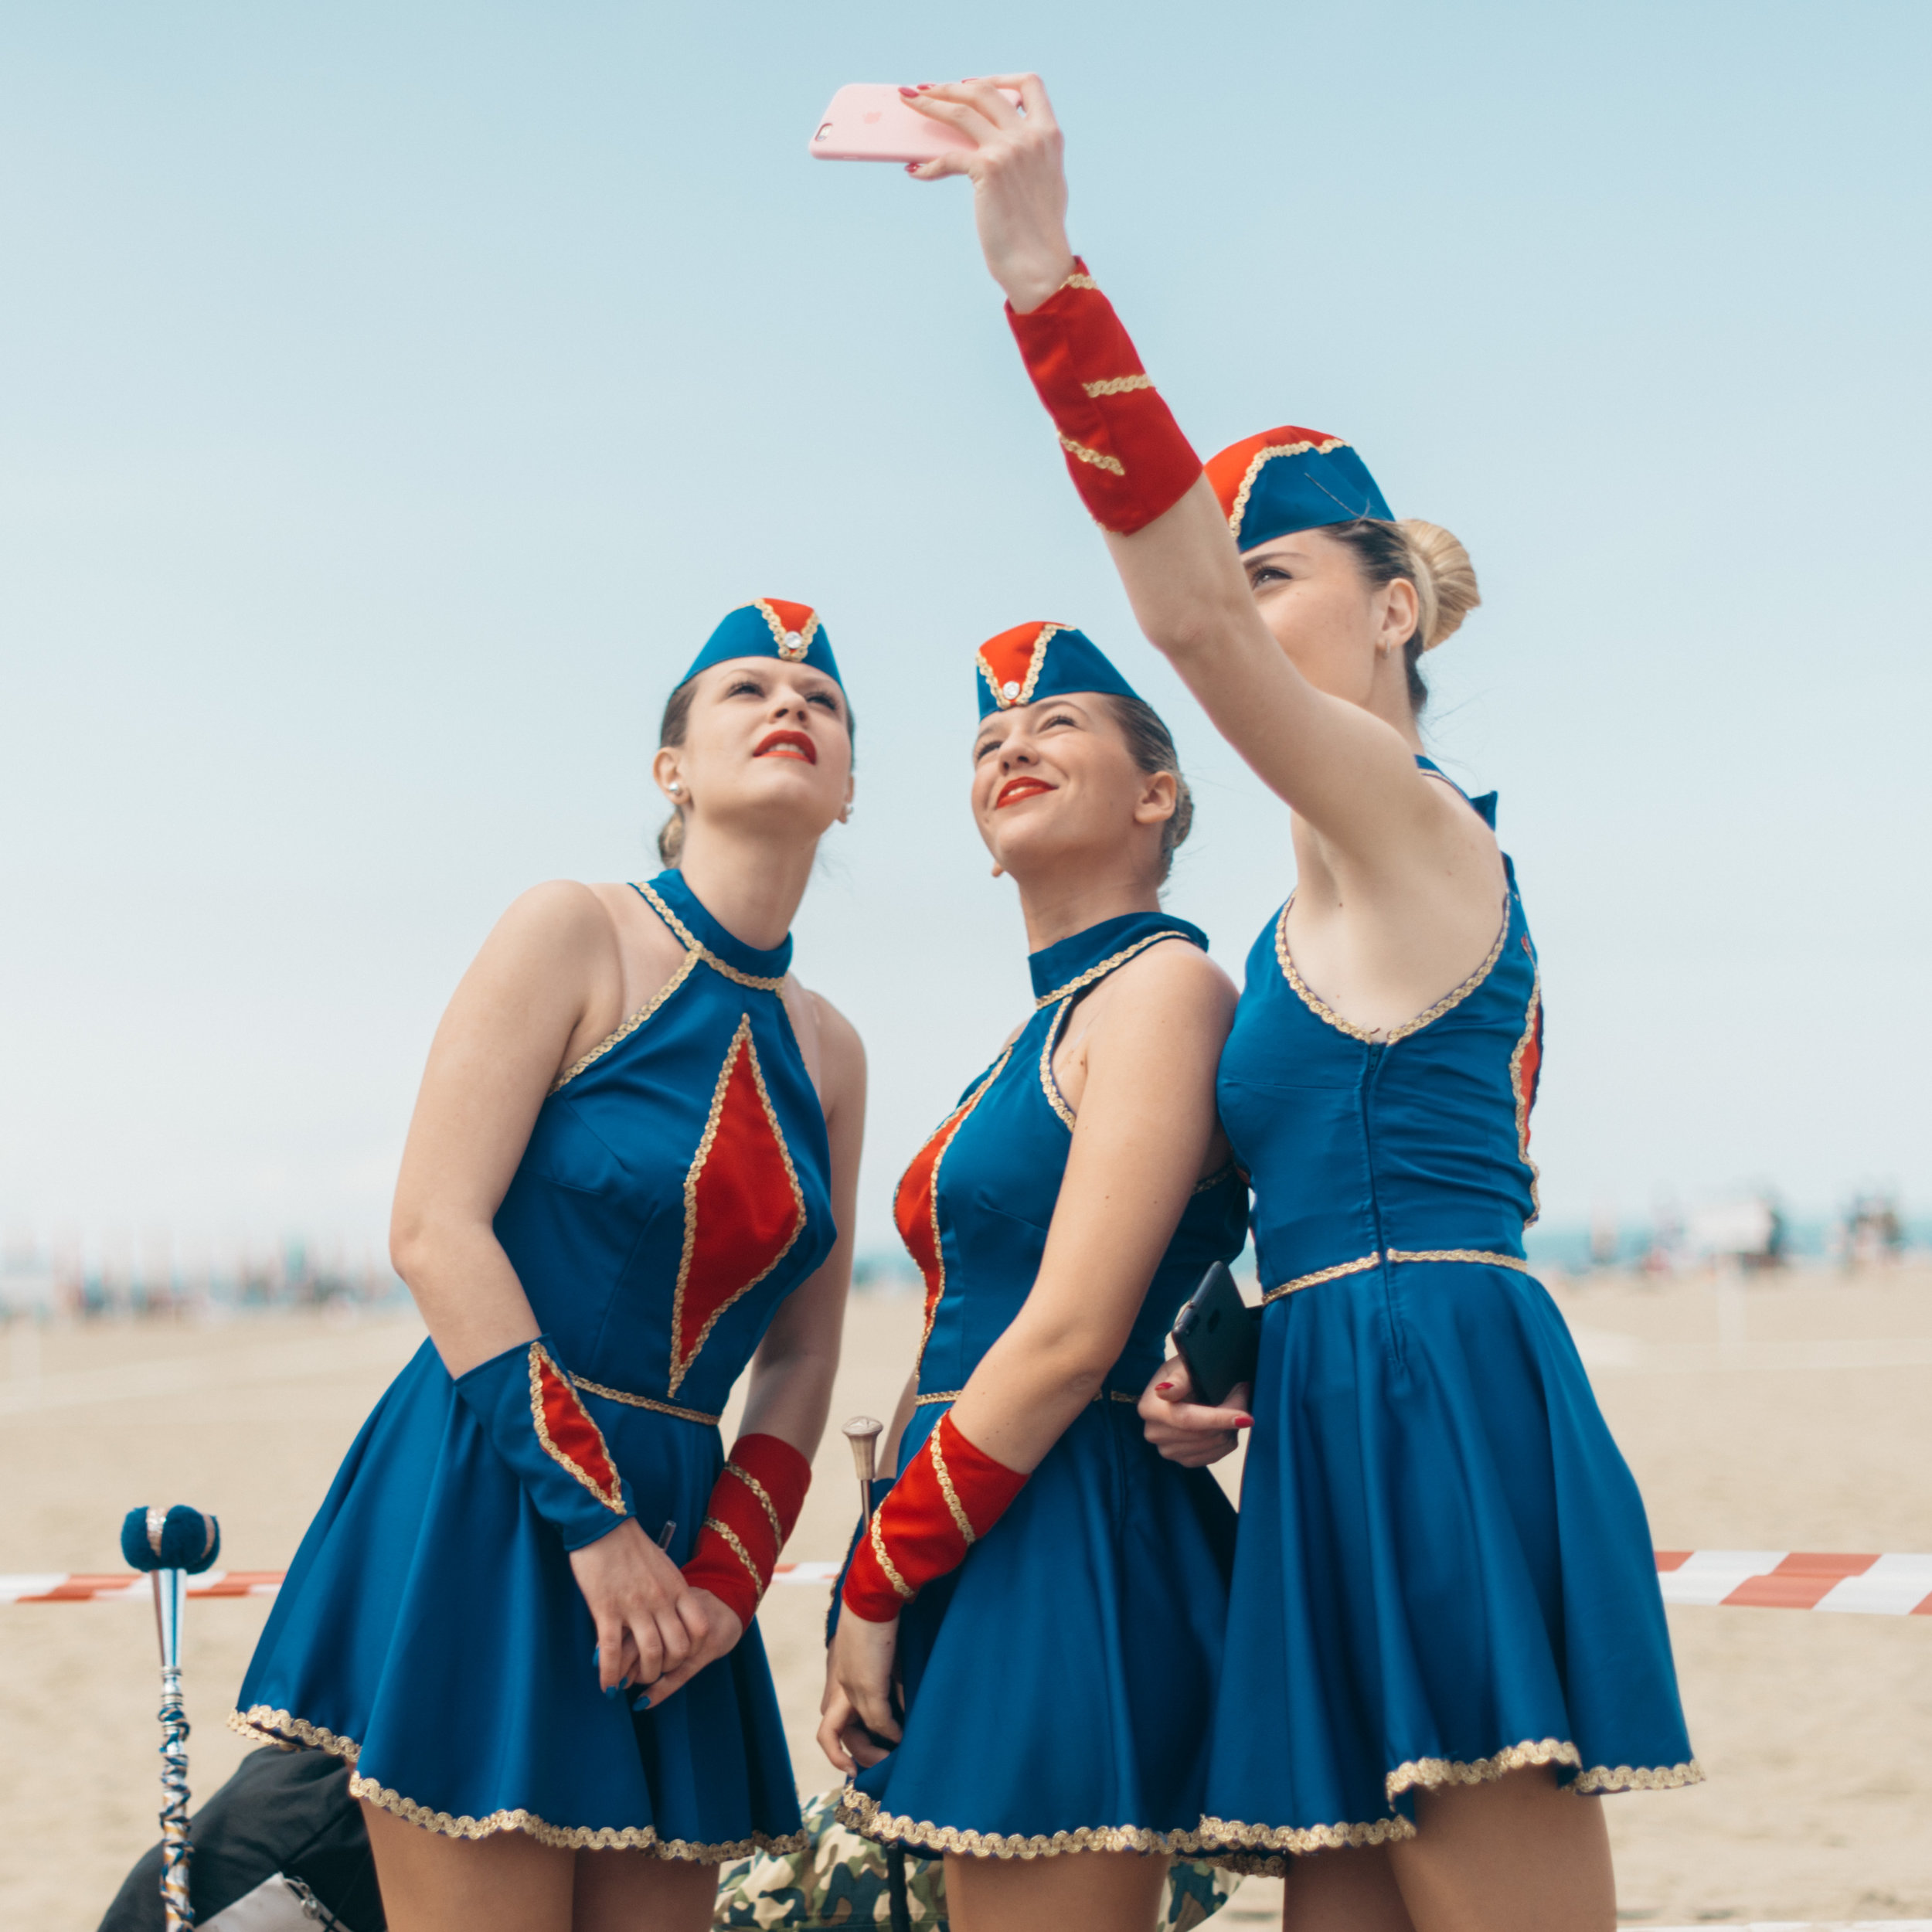 Three girls from the Majorettes di Mentana take a selfie in their uniforms before a competition.